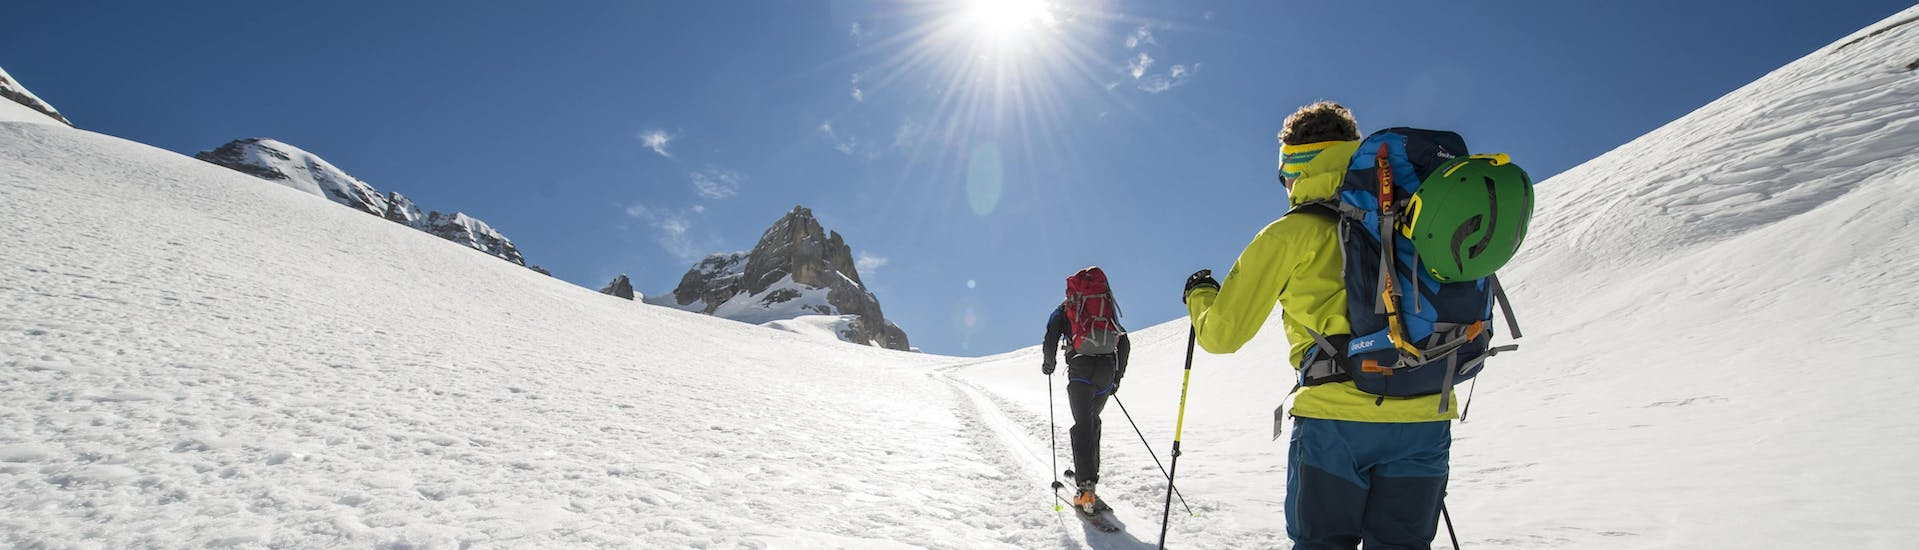 A ski touring guide is guiding another skier to the mountain summit while on a ski tour in the ski resort of Claviere.